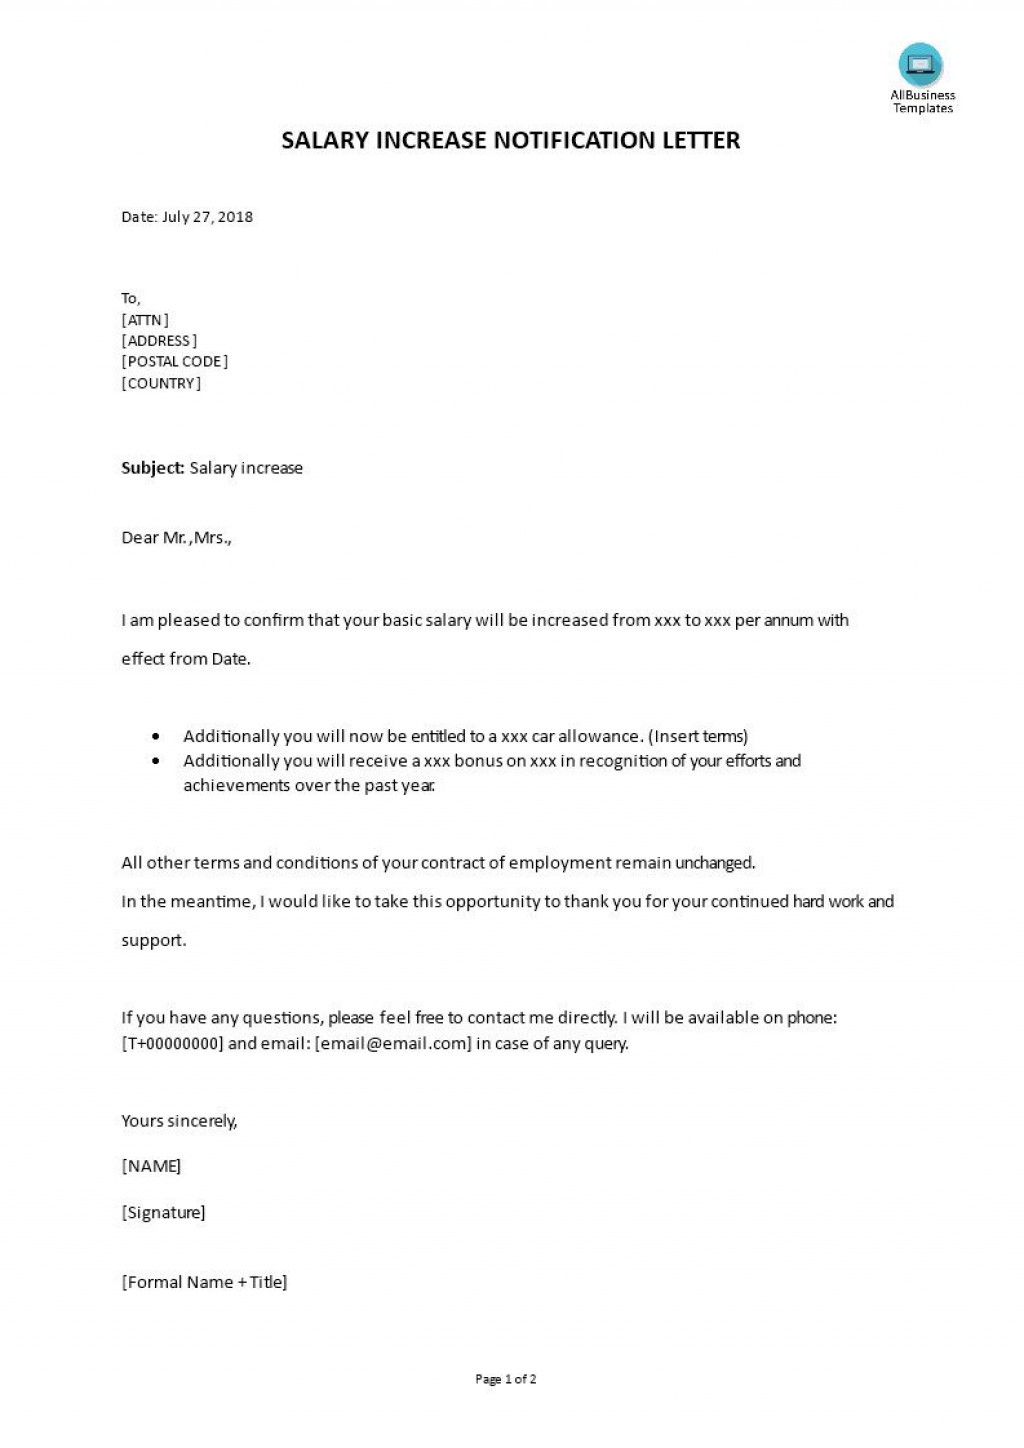 001 Wonderful Salary Increase Letter Template High Resolution  From Employer To Employee Australia No ForLarge